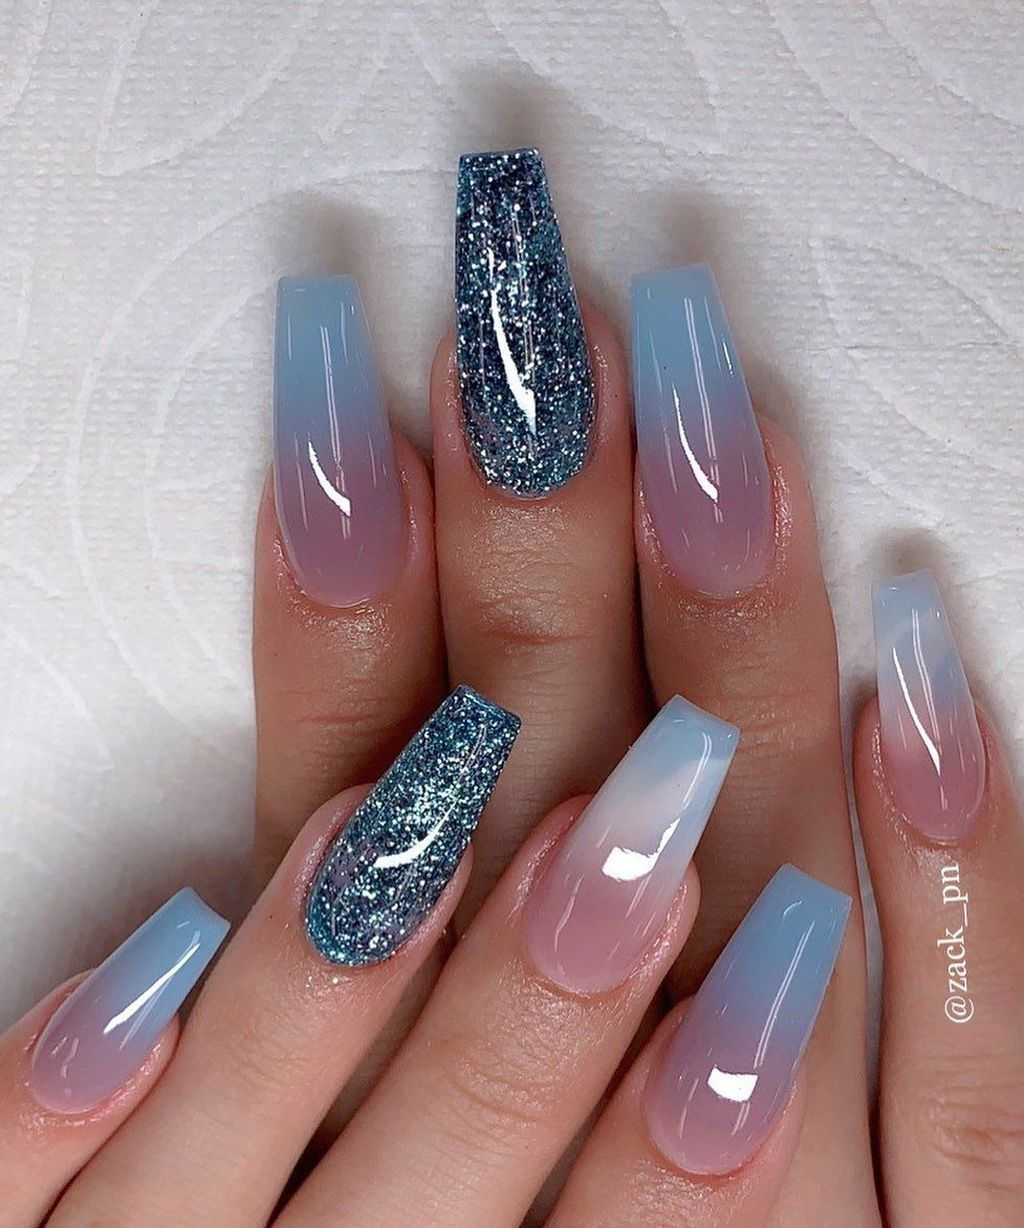 30+ Casual Acrylic Nail Art Designs Ideas To Fascinate Your Admirers